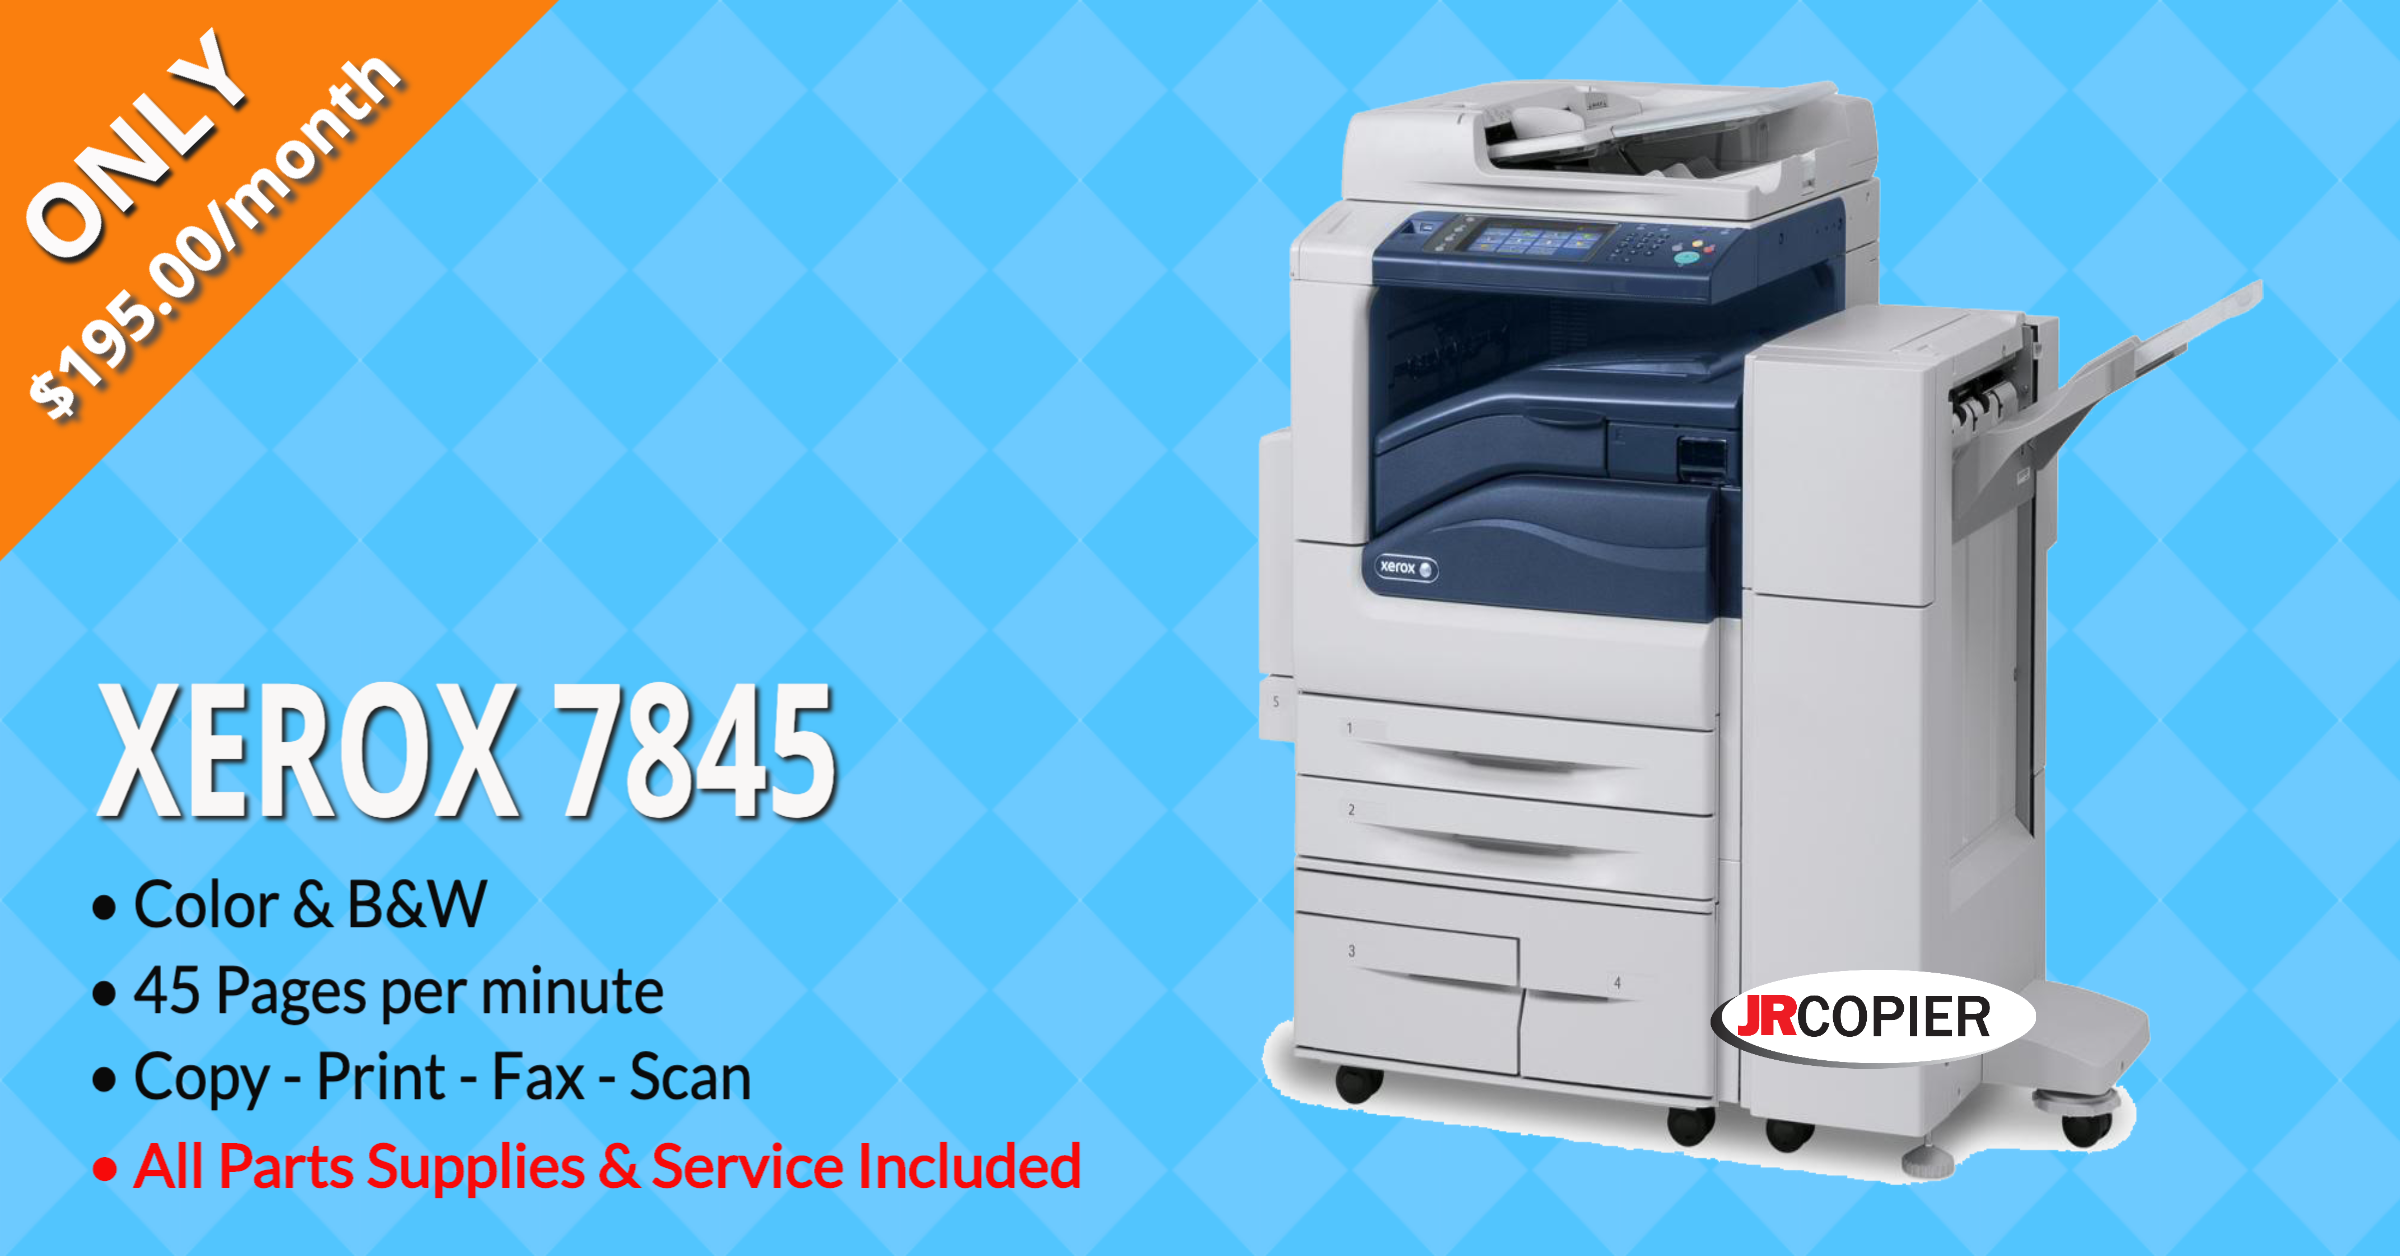 Copy Machine Companies 11590, 11592